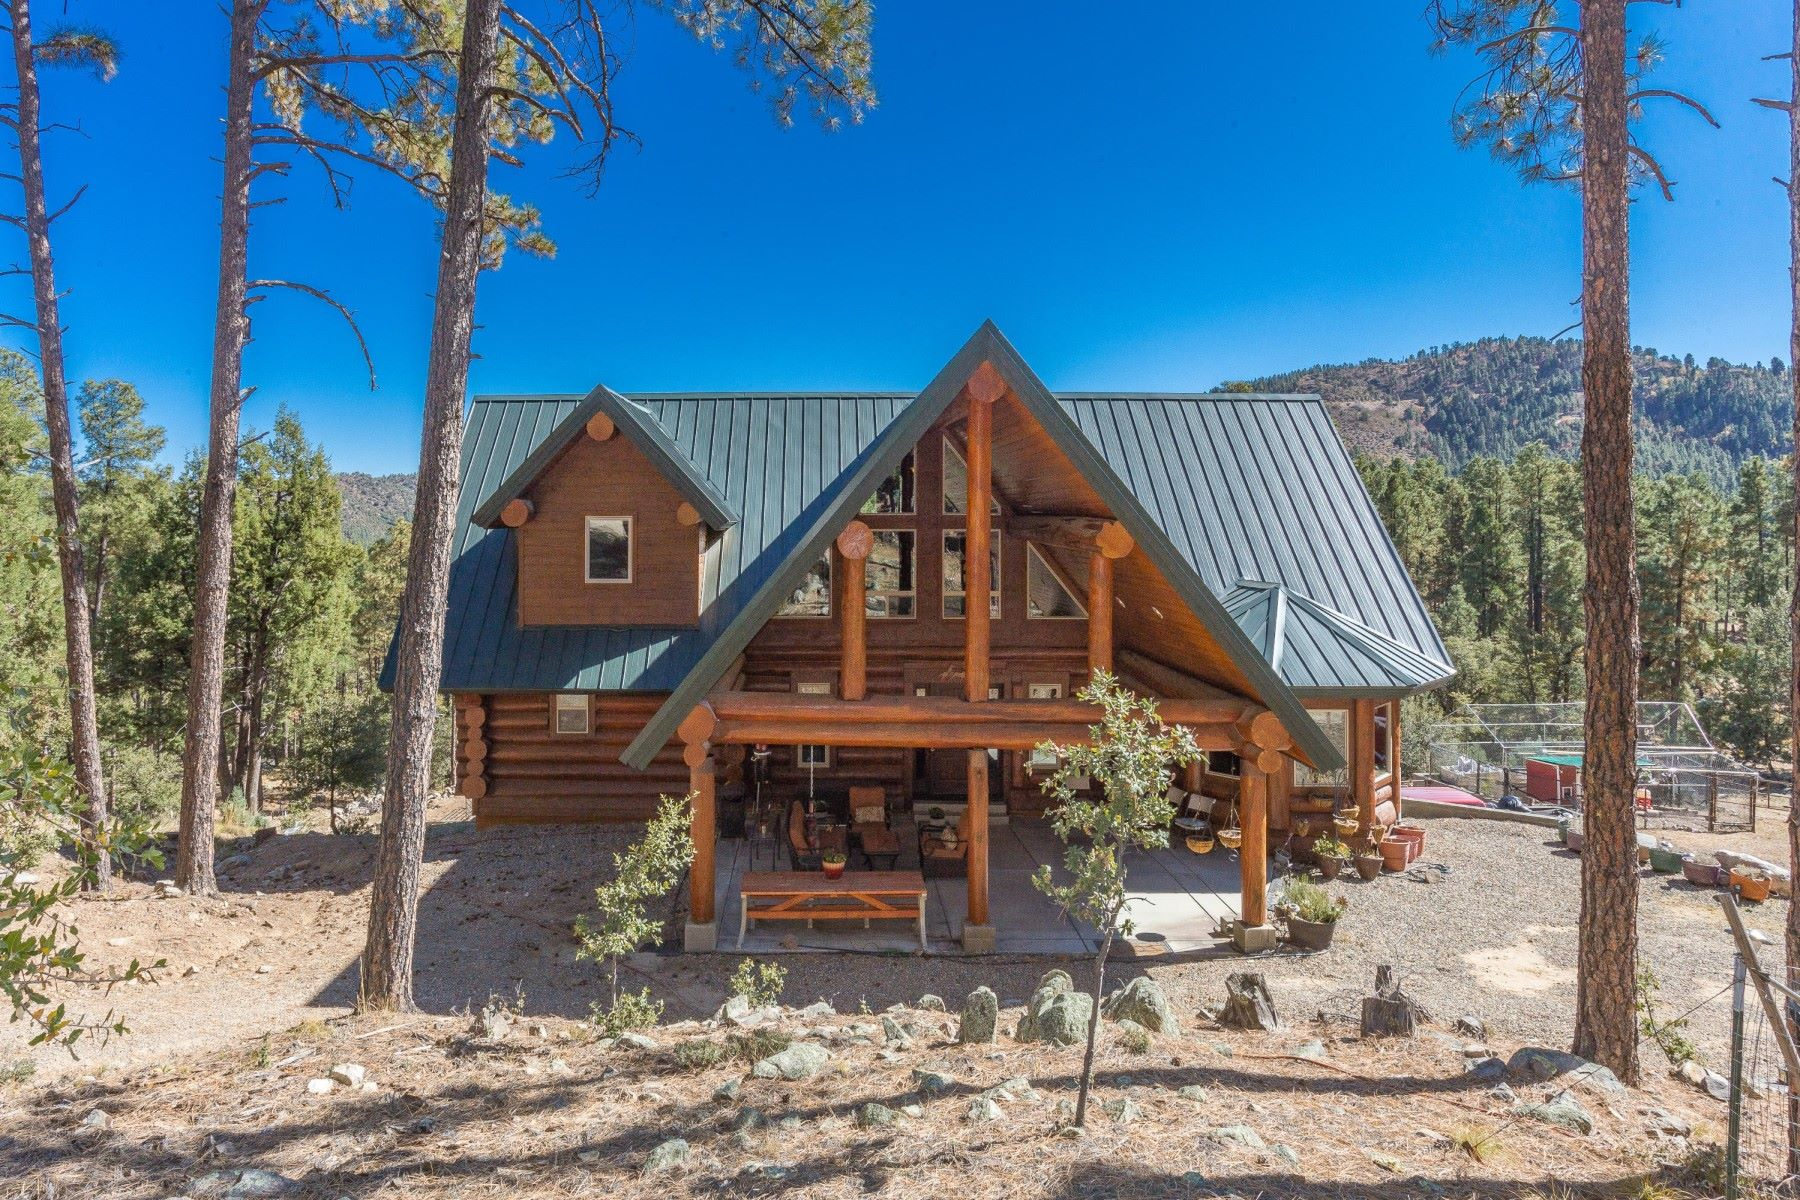 Single Family Homes for Active at Stunning Canadian Log Cabin 5975 S Morning Star Lane Prescott, Arizona 86303 United States